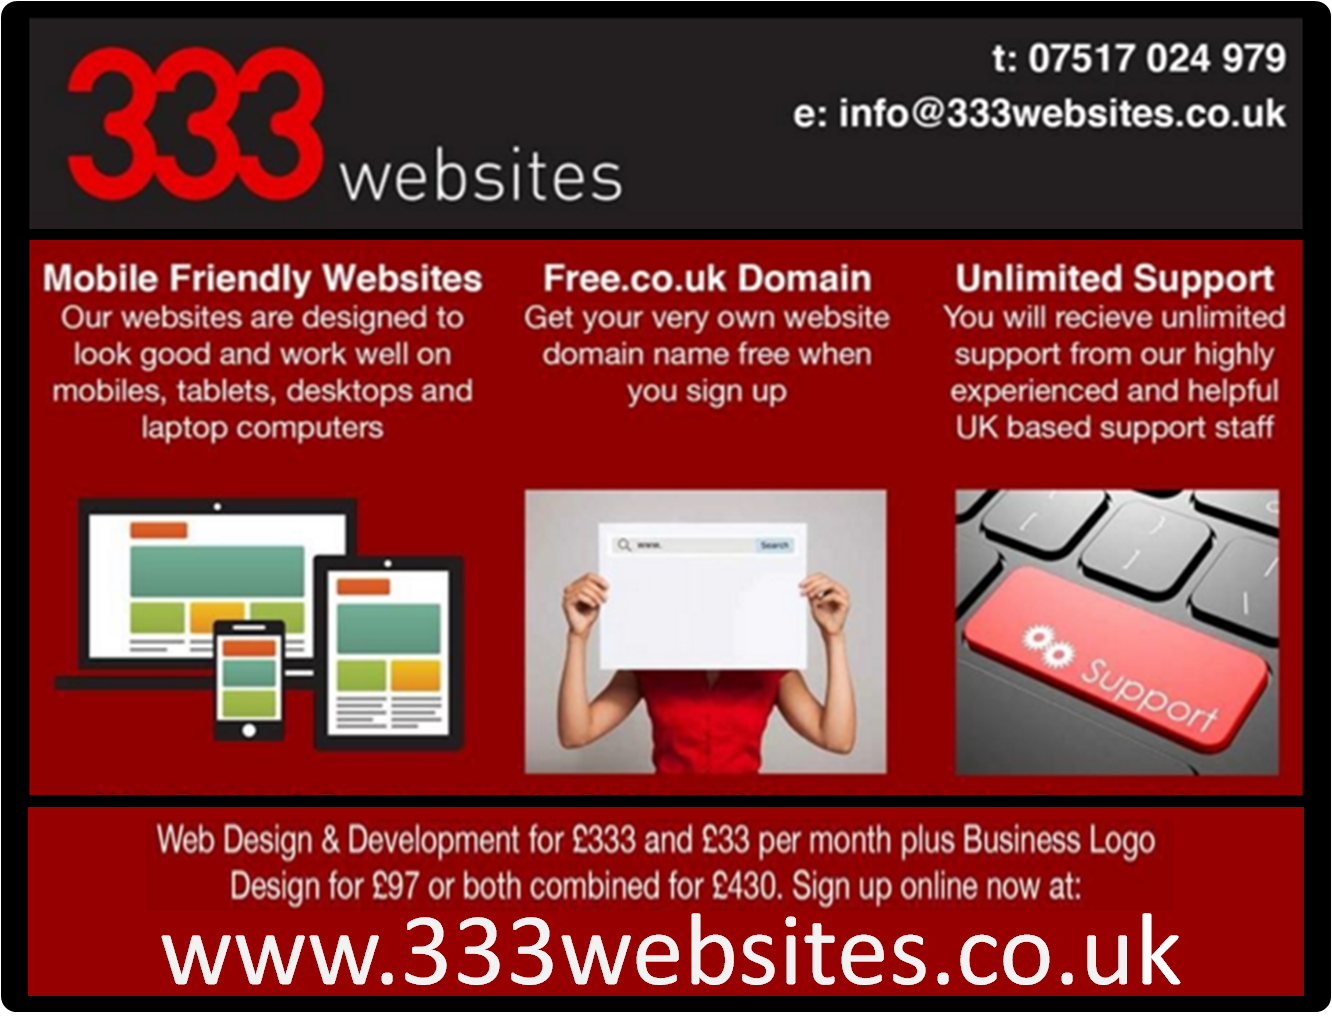 South West Websites Online